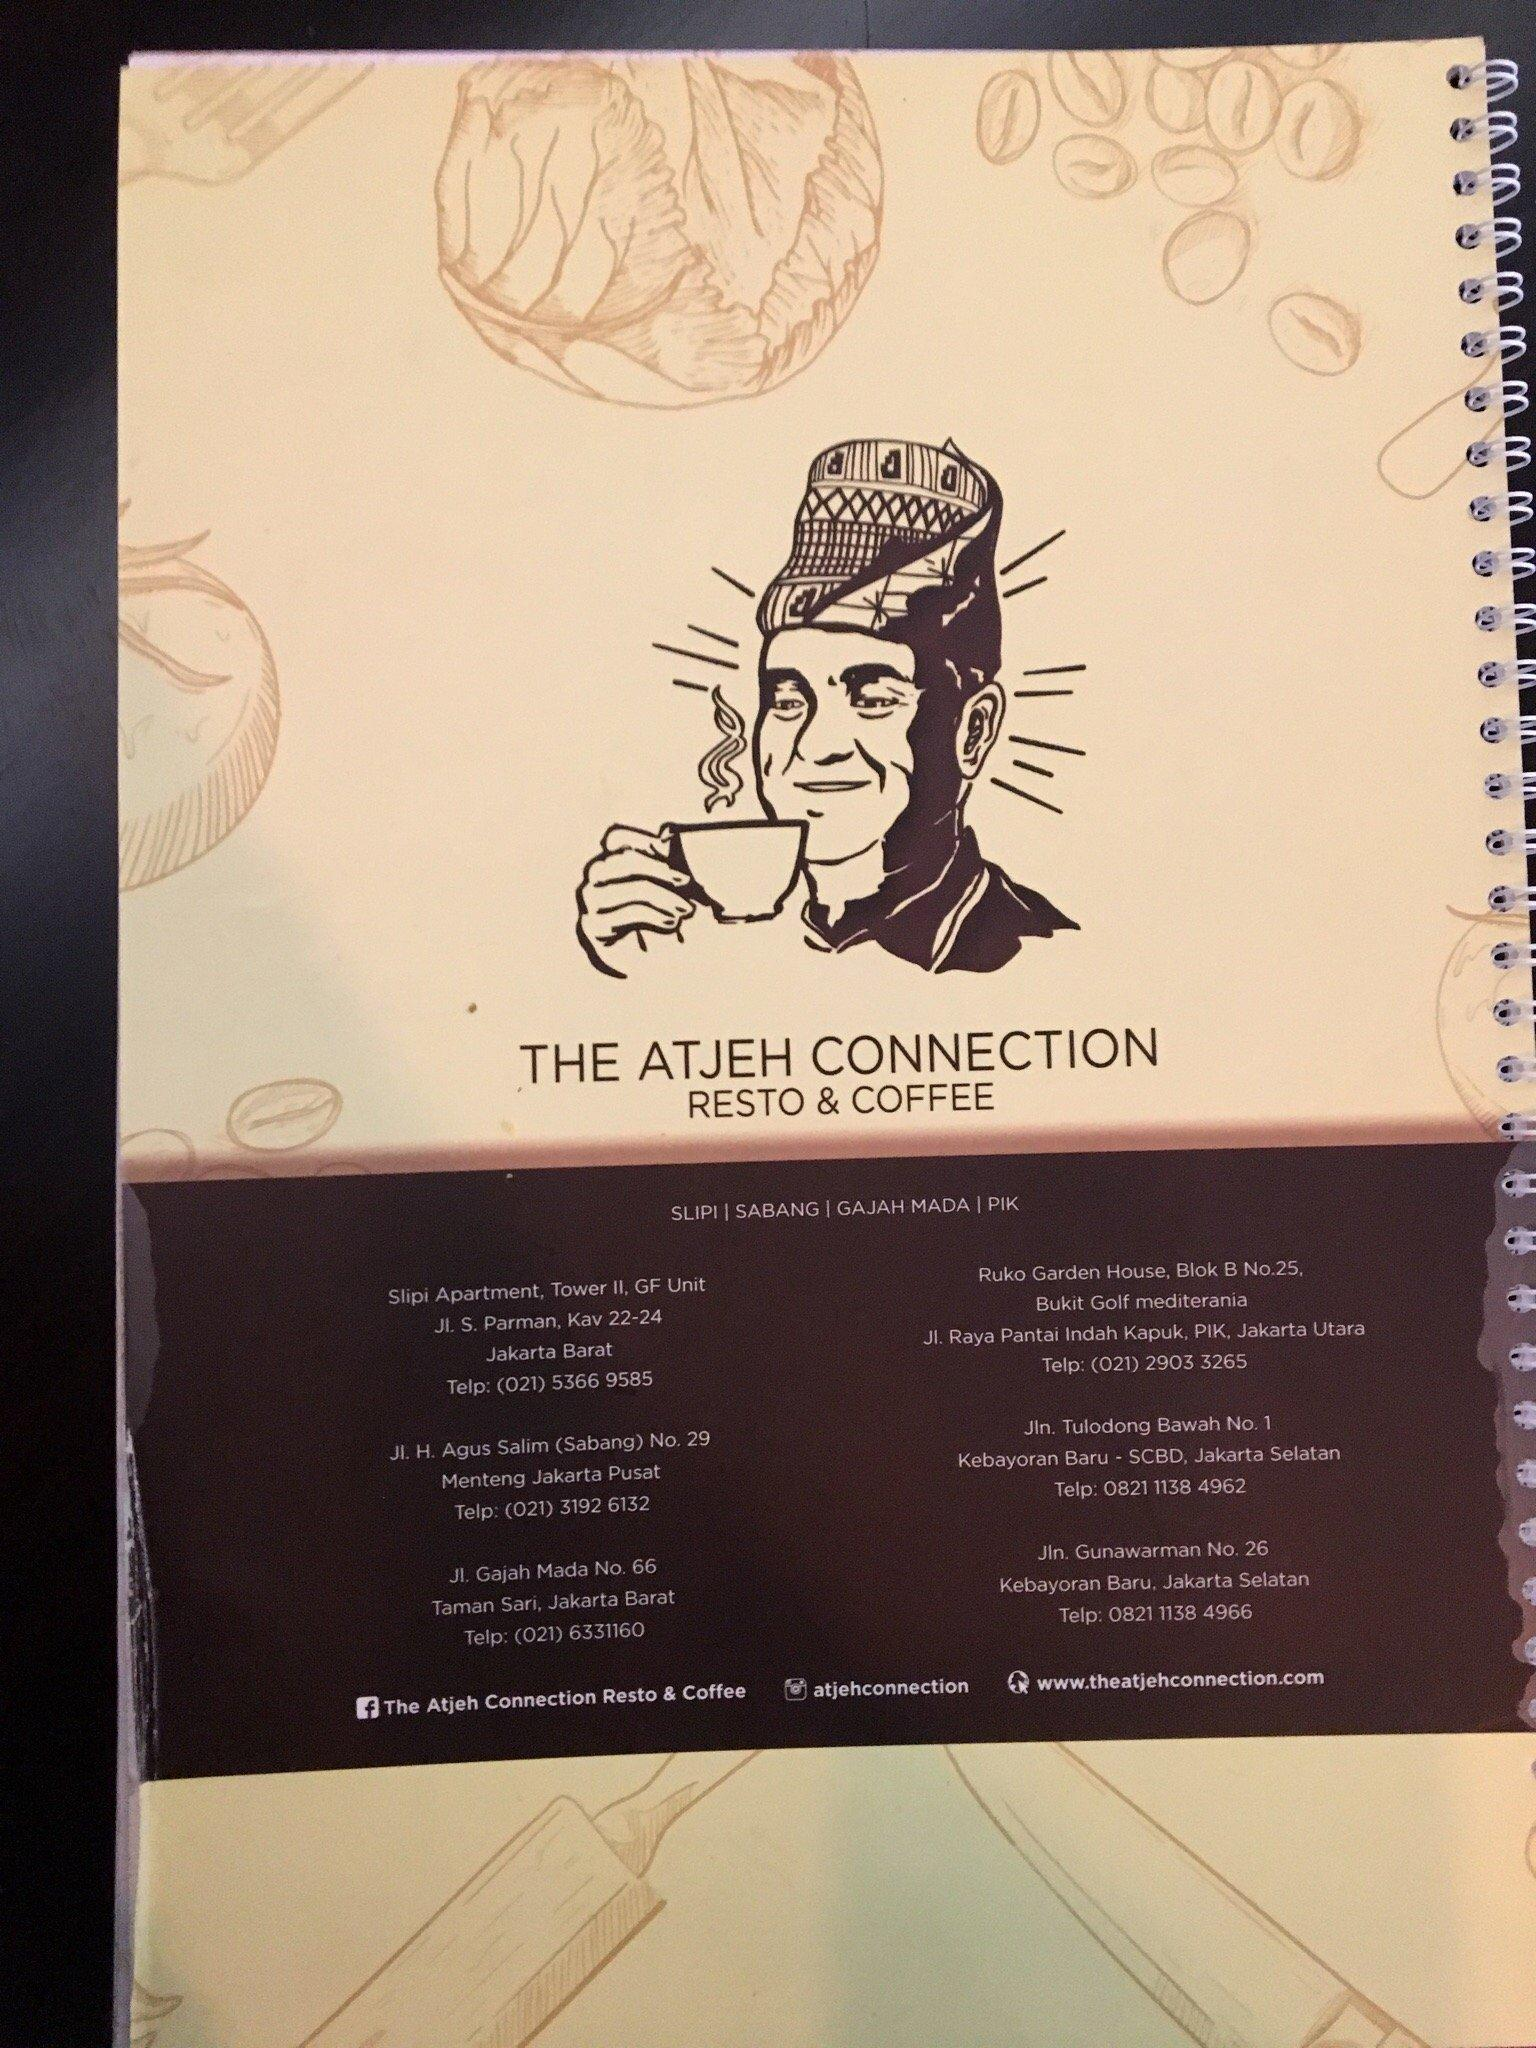 Foto The Atjeh Connection Resto & Coffee lainnya